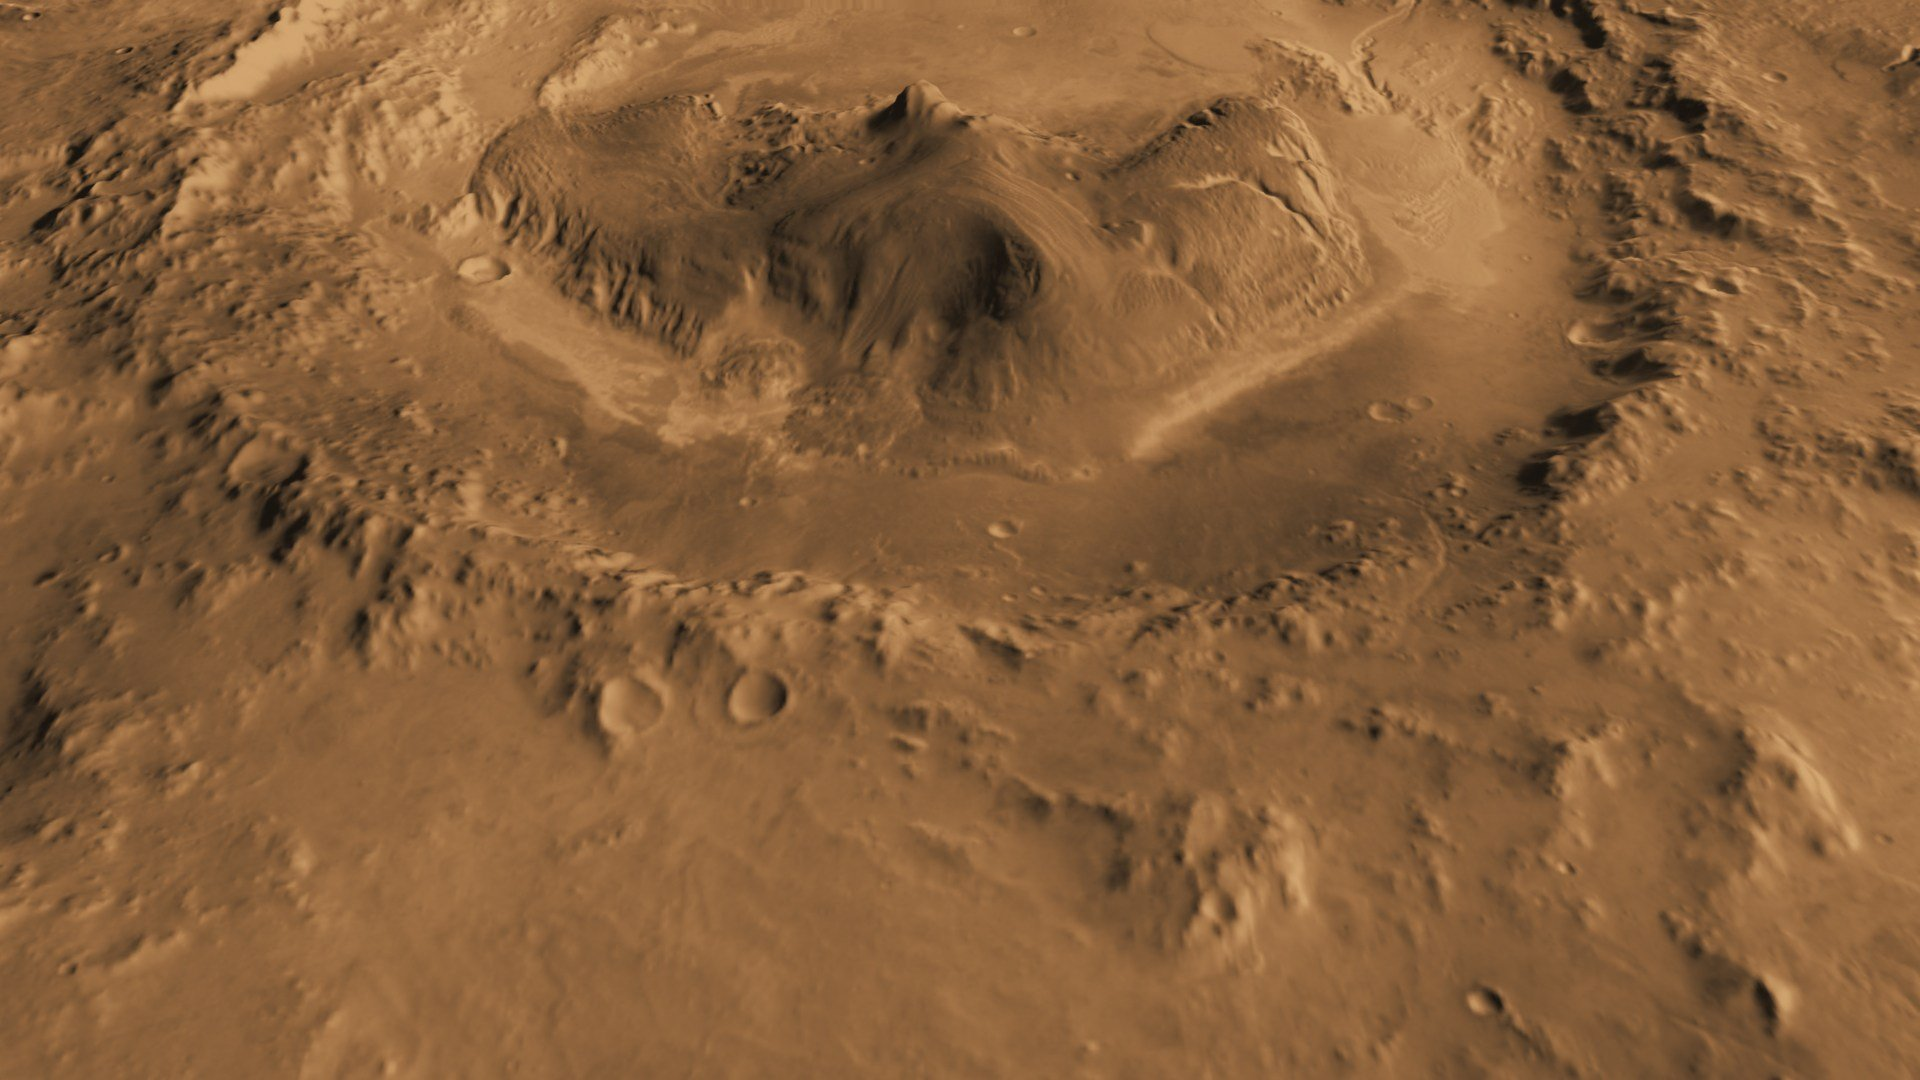 Mars' Gale Crater as seen from above. Credit: NASA